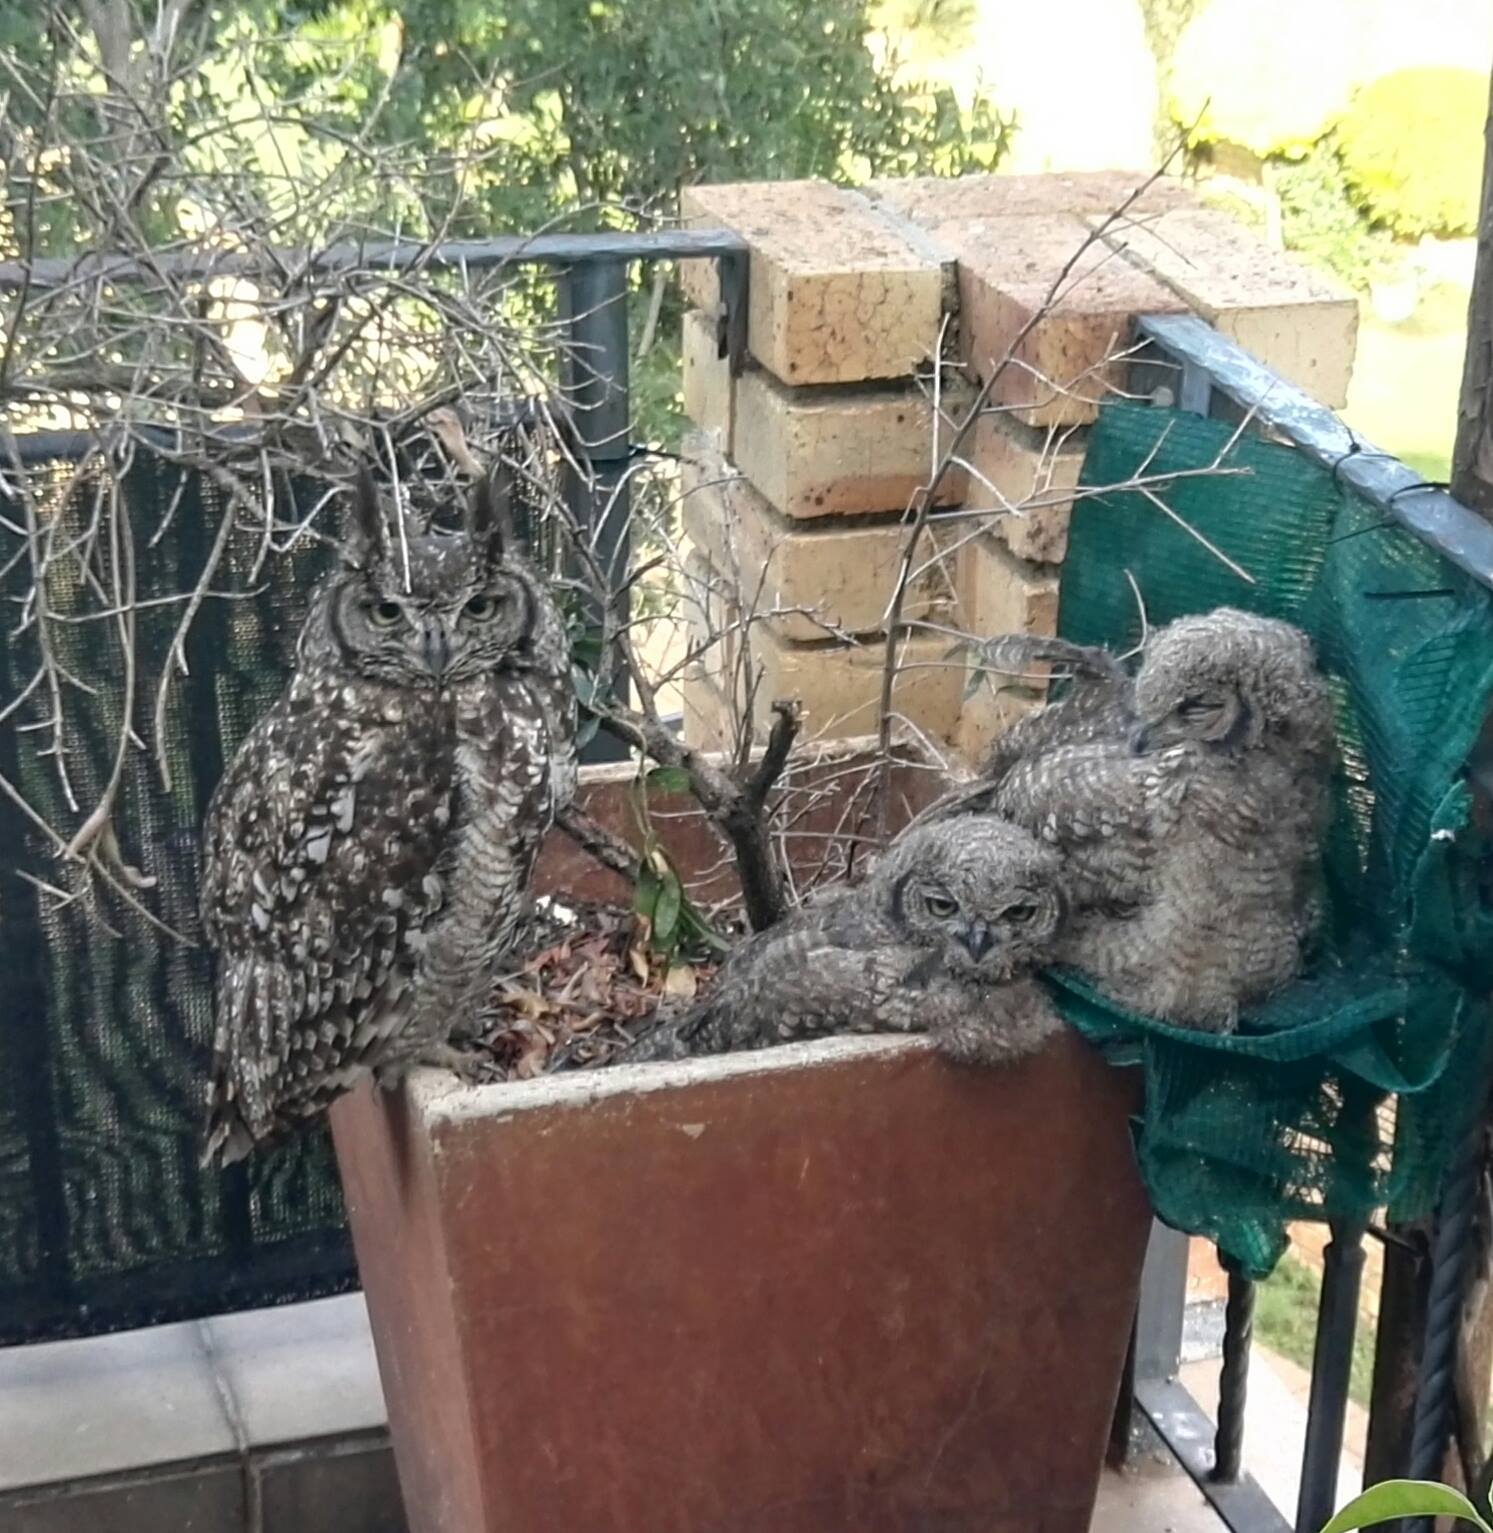 Lady with her owlets 16 Dec. 2018.jpg